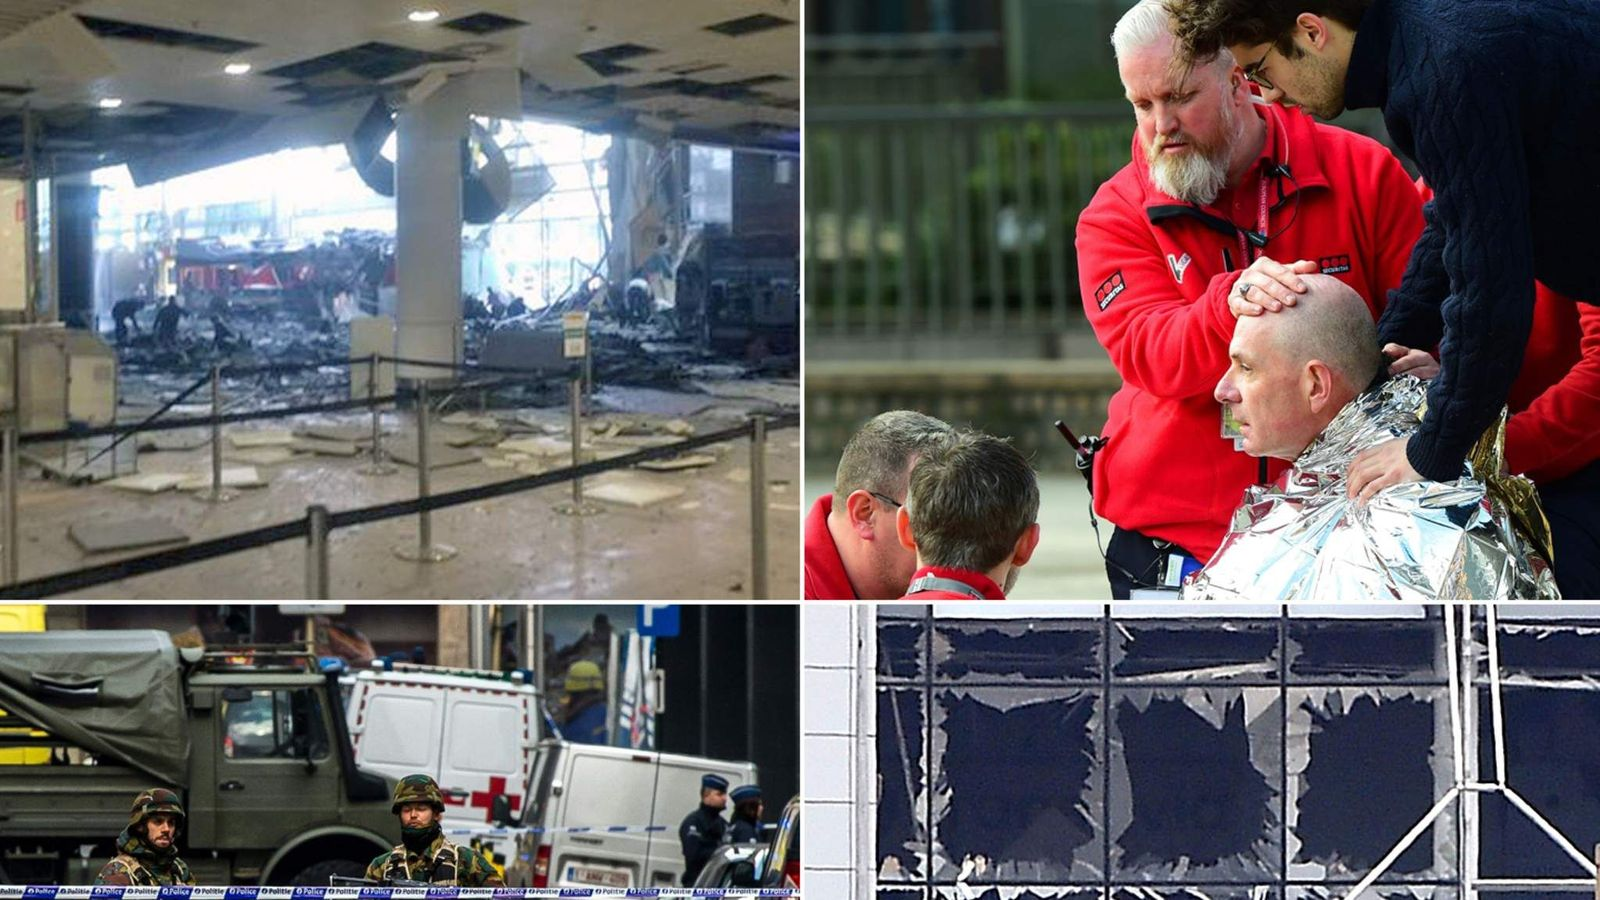 brussels metro & airport terror attacks